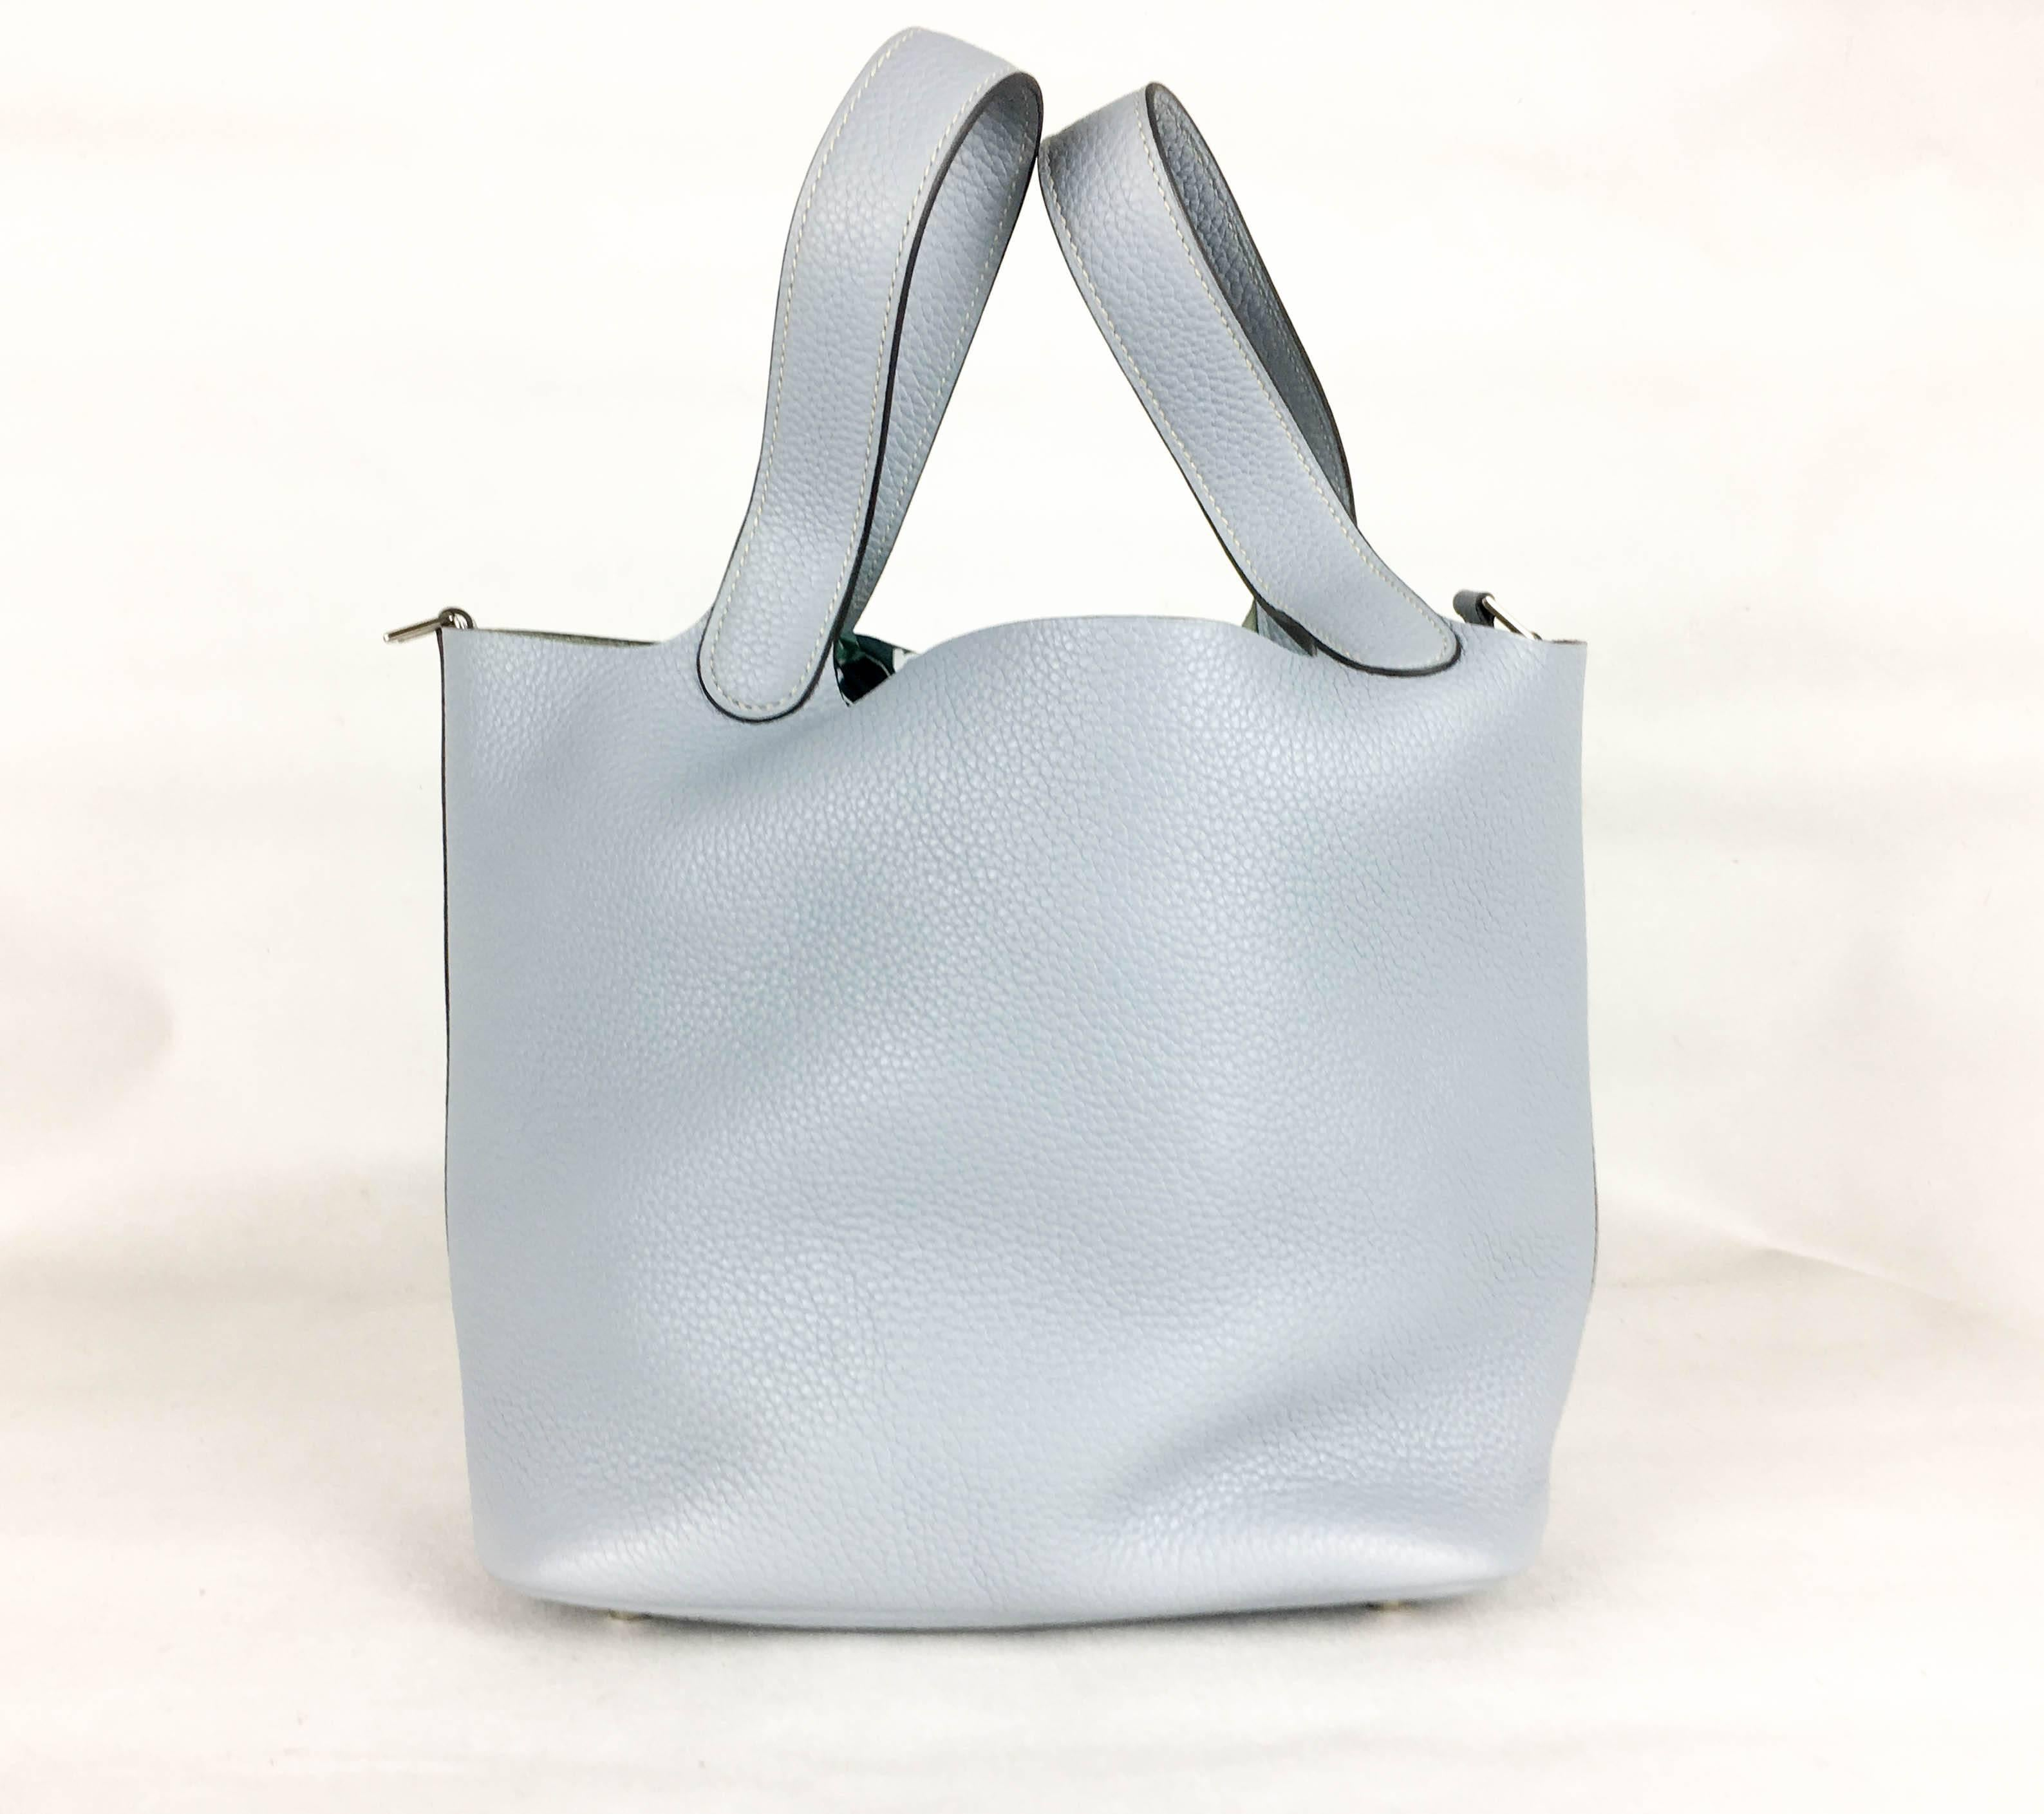 25178cd51c181 ... new zealand gray 2014 hermes picotin 22 handbag in pale blue clemence  leather for sale 81bed ...